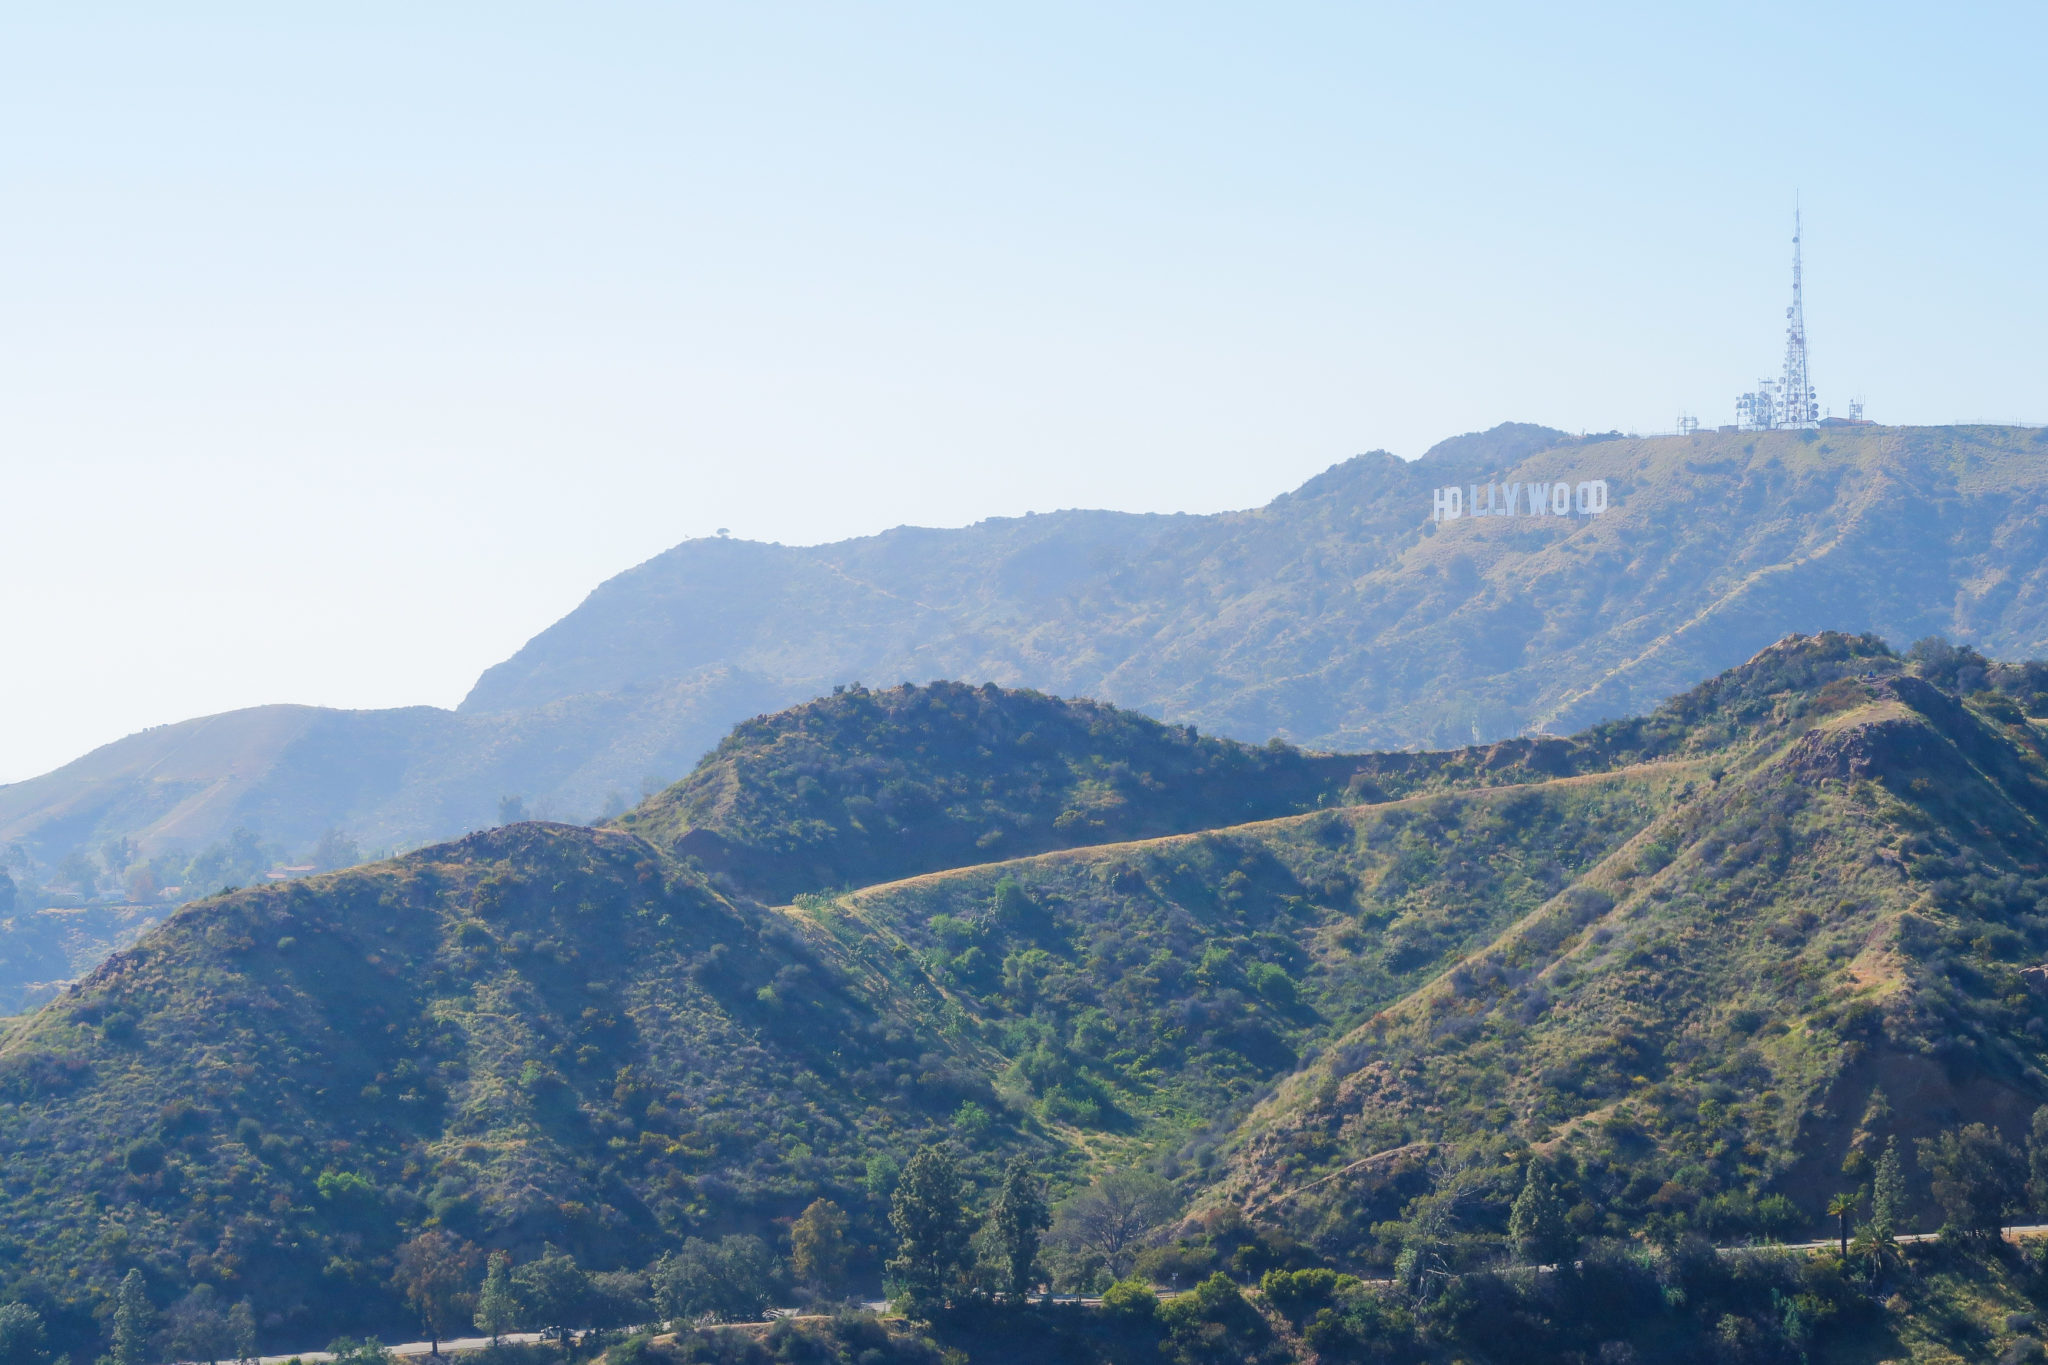 Lettres d'Hollywood sur le mont Lee, Californie.